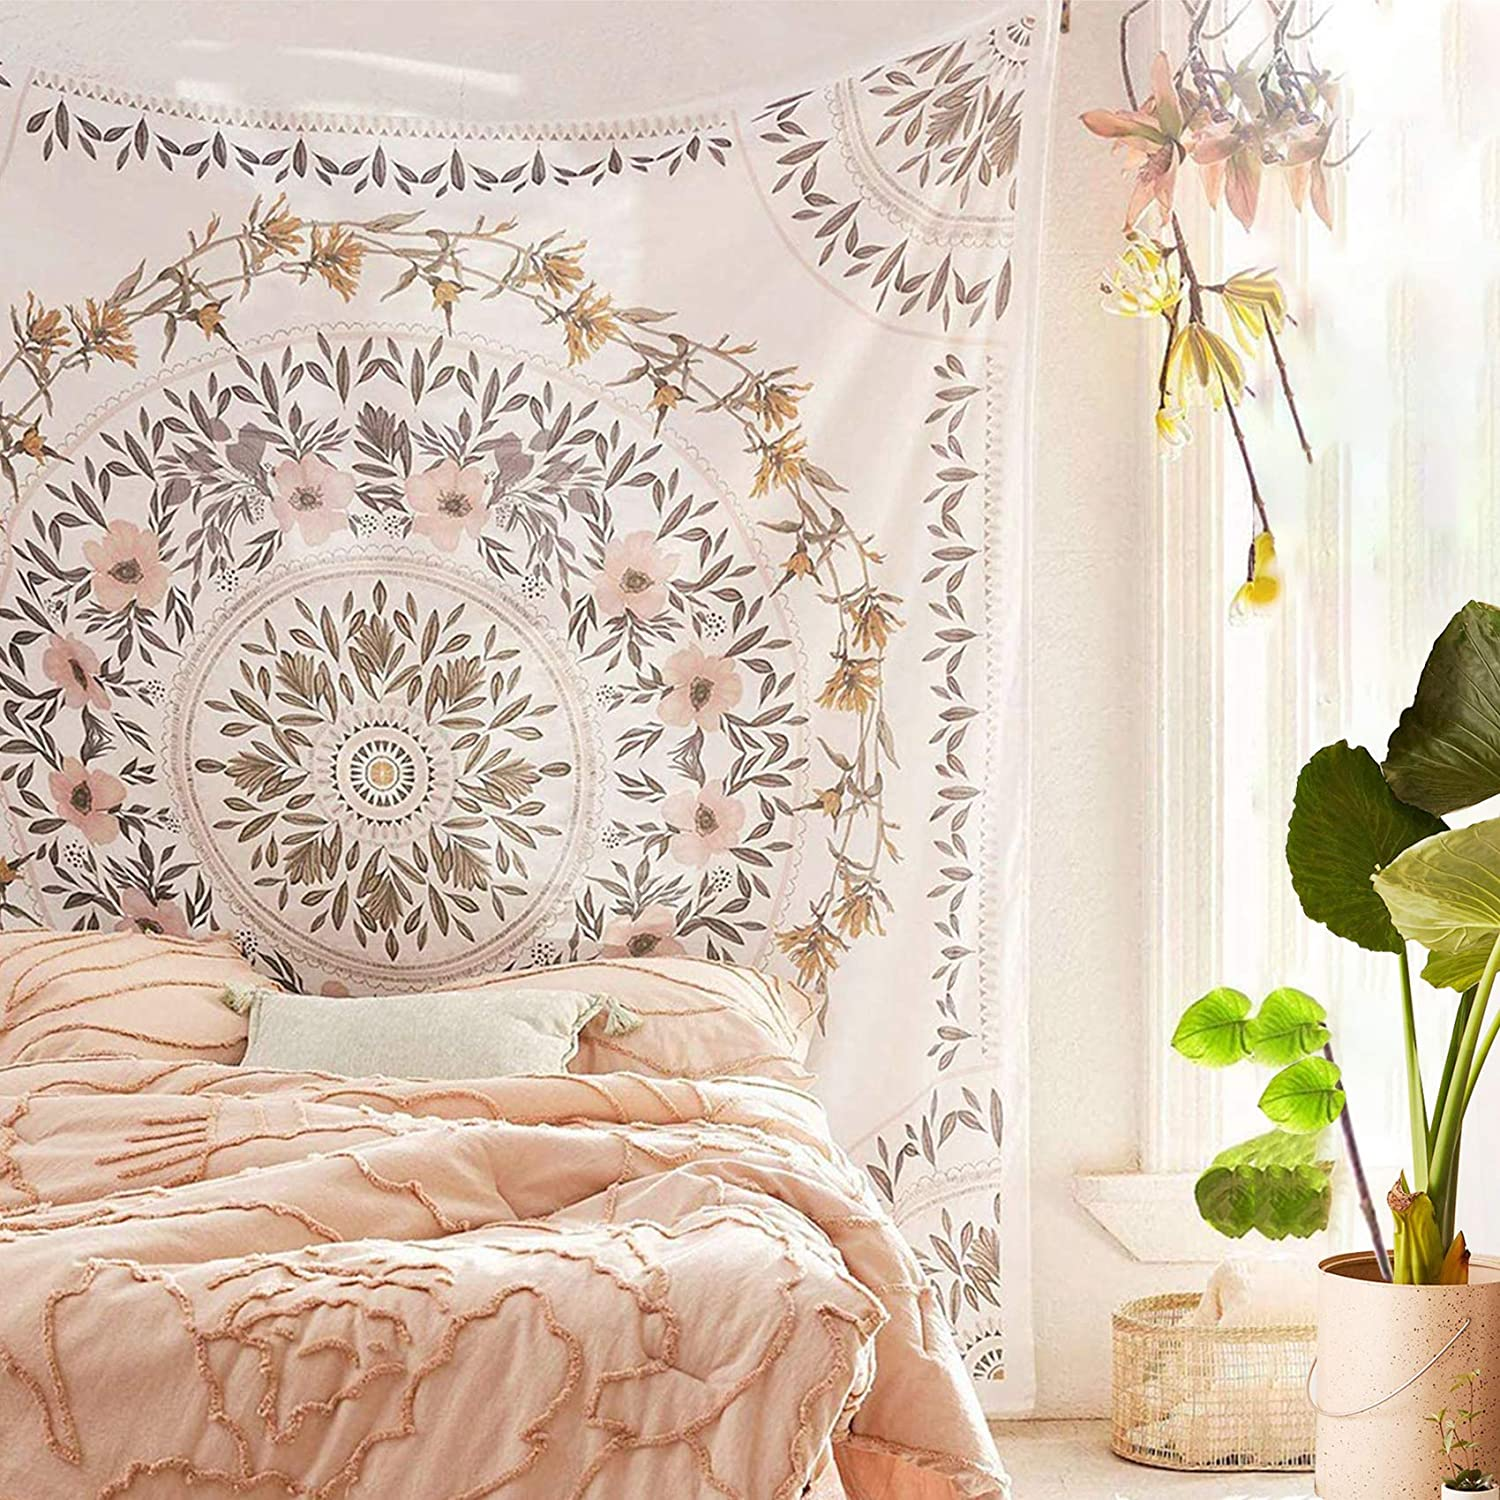 Long-awaited Simpkeely Sketched Floral Medallion Bohemian Mandala Tapestry New life W